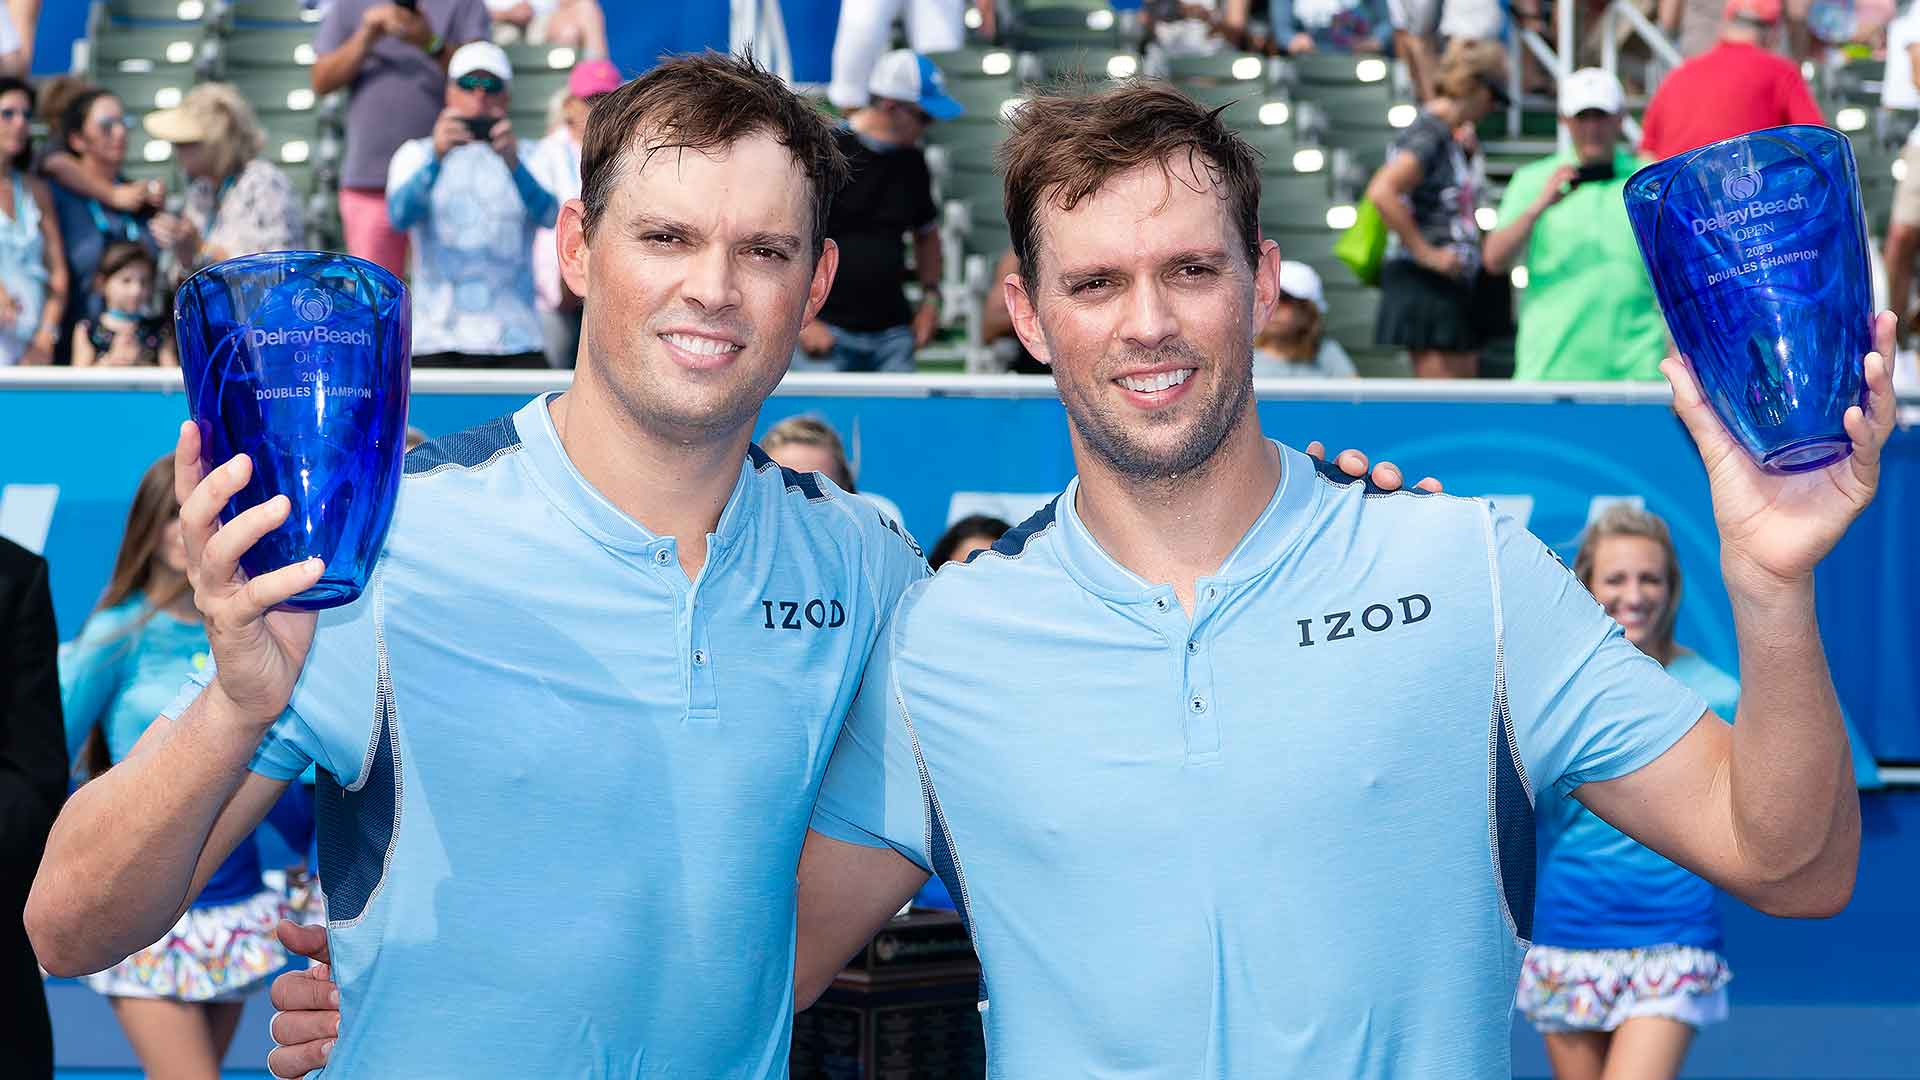 Bryans win 117th tour-level title in Delray Beach